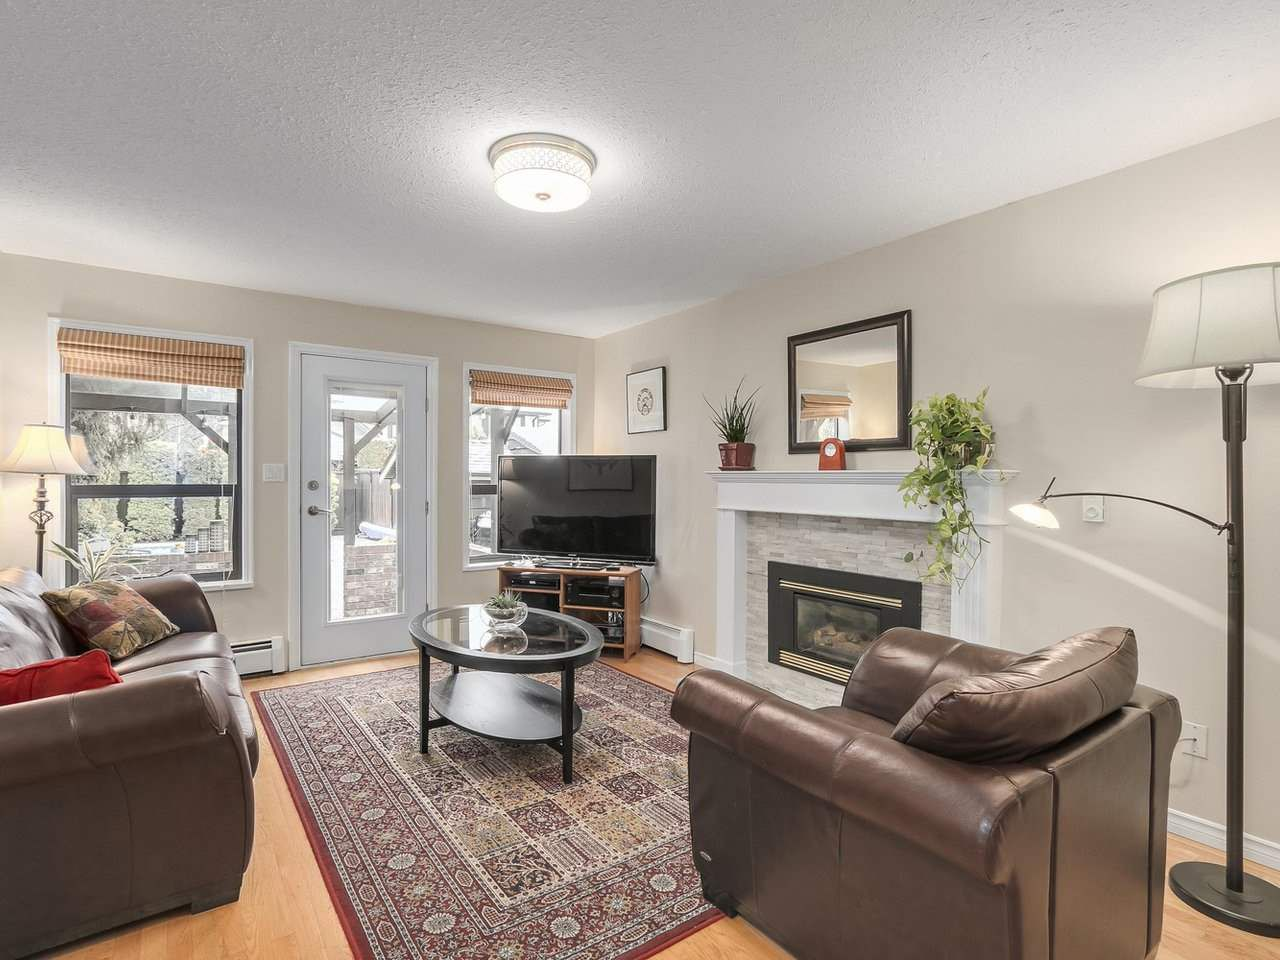 Photo 9: Photos: 887 KELVIN Street in Coquitlam: Harbour Chines House for sale : MLS®# R2240068